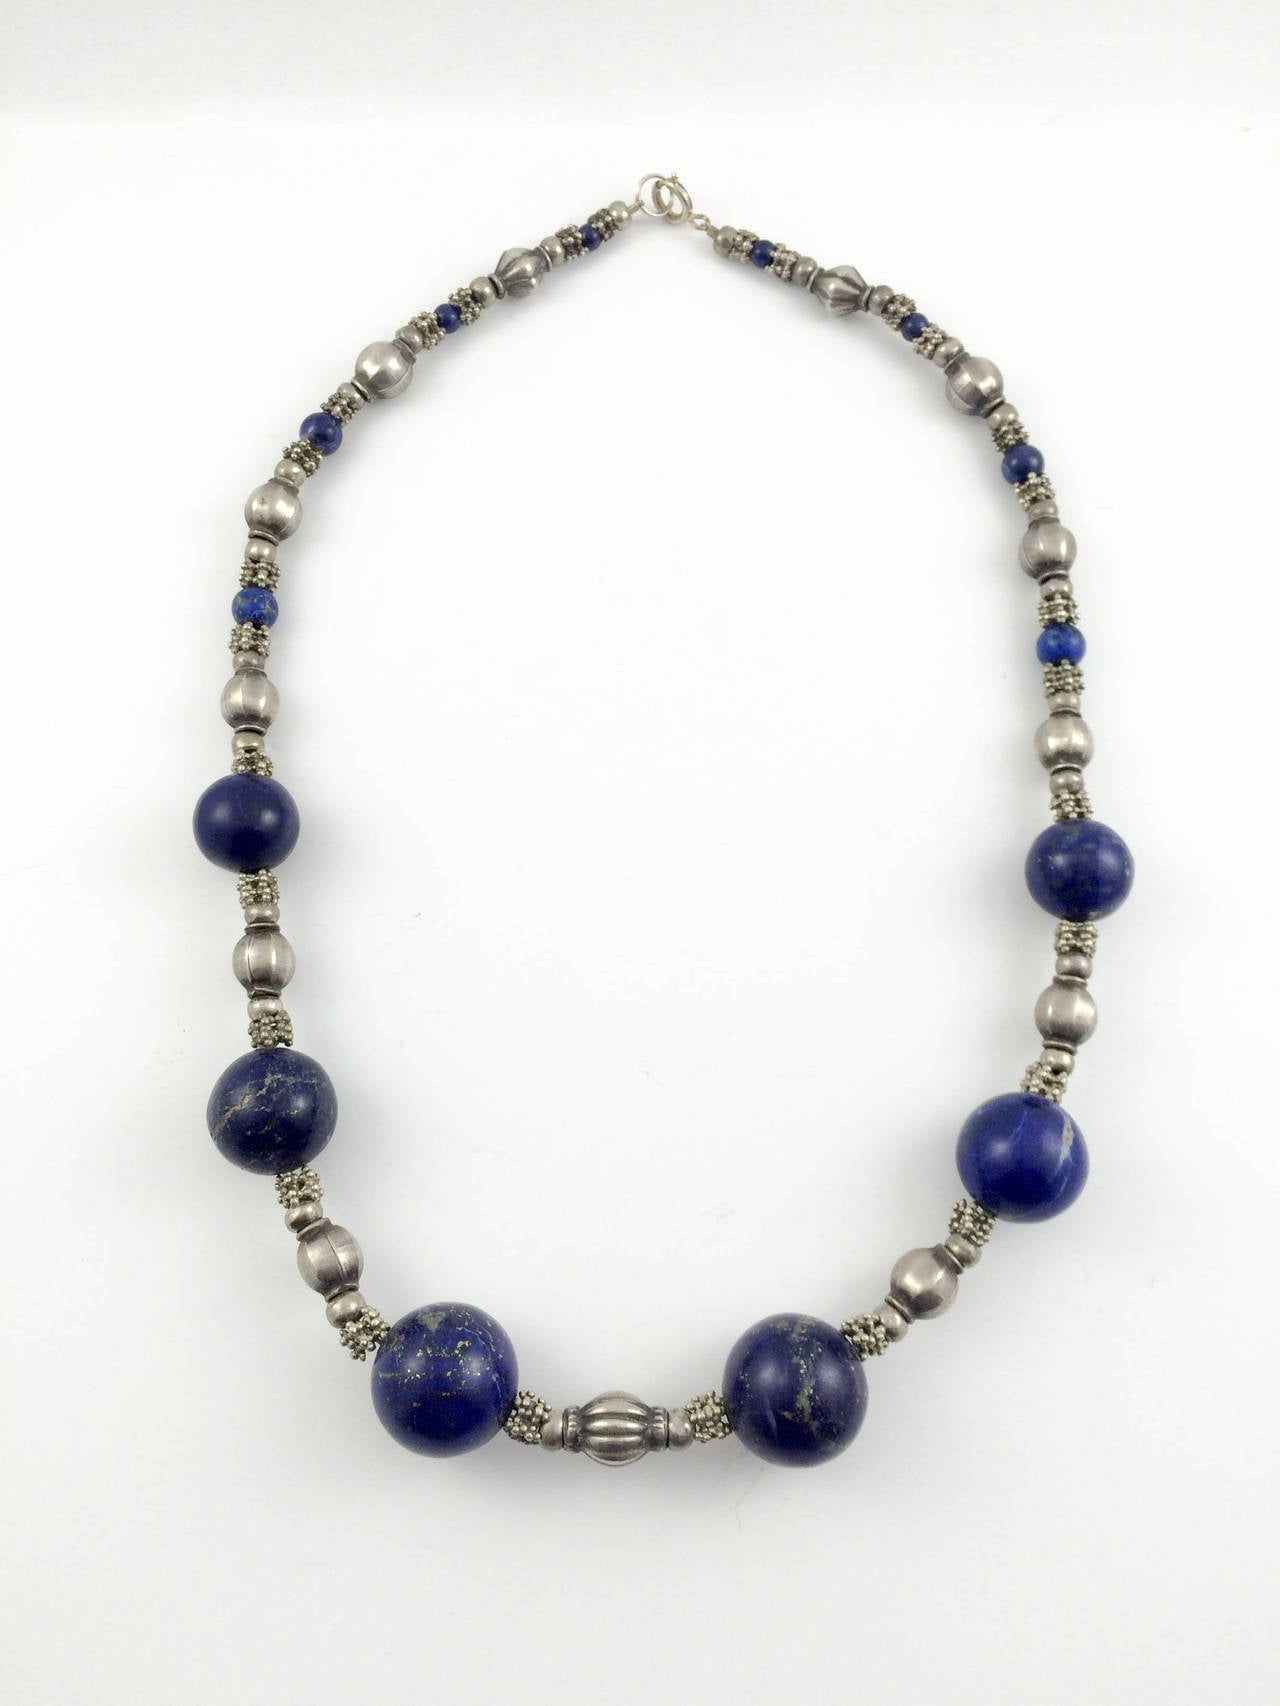 Stylish Vintage Silver and Lapis Lazuli Necklace. Intricate lovely design on silver with lapis lazuli beads. We are uncertain of its origins, but it has an Asian influence.    Period: 1970s  Materials: Silver and Lapis Lazuli  Condition: